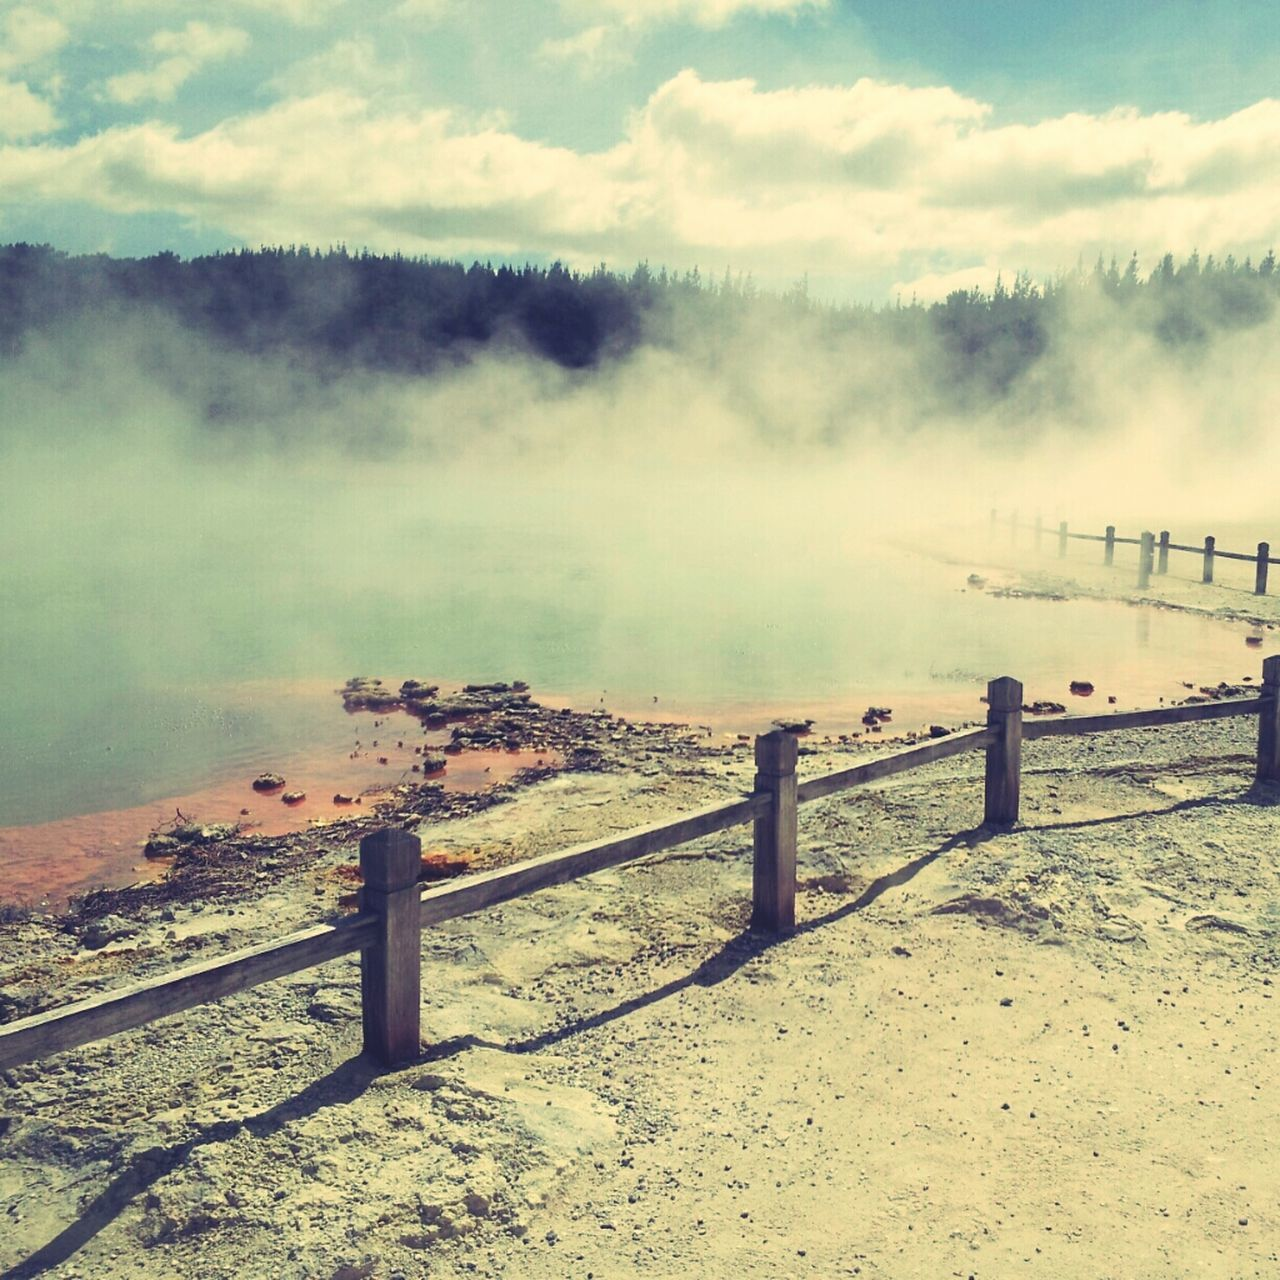 Wai-O-Tapu: paikura© The Explorer - 2014 EyeEm Awards EyeEm Nature Lover EyeEm Best Shots AMPt_community